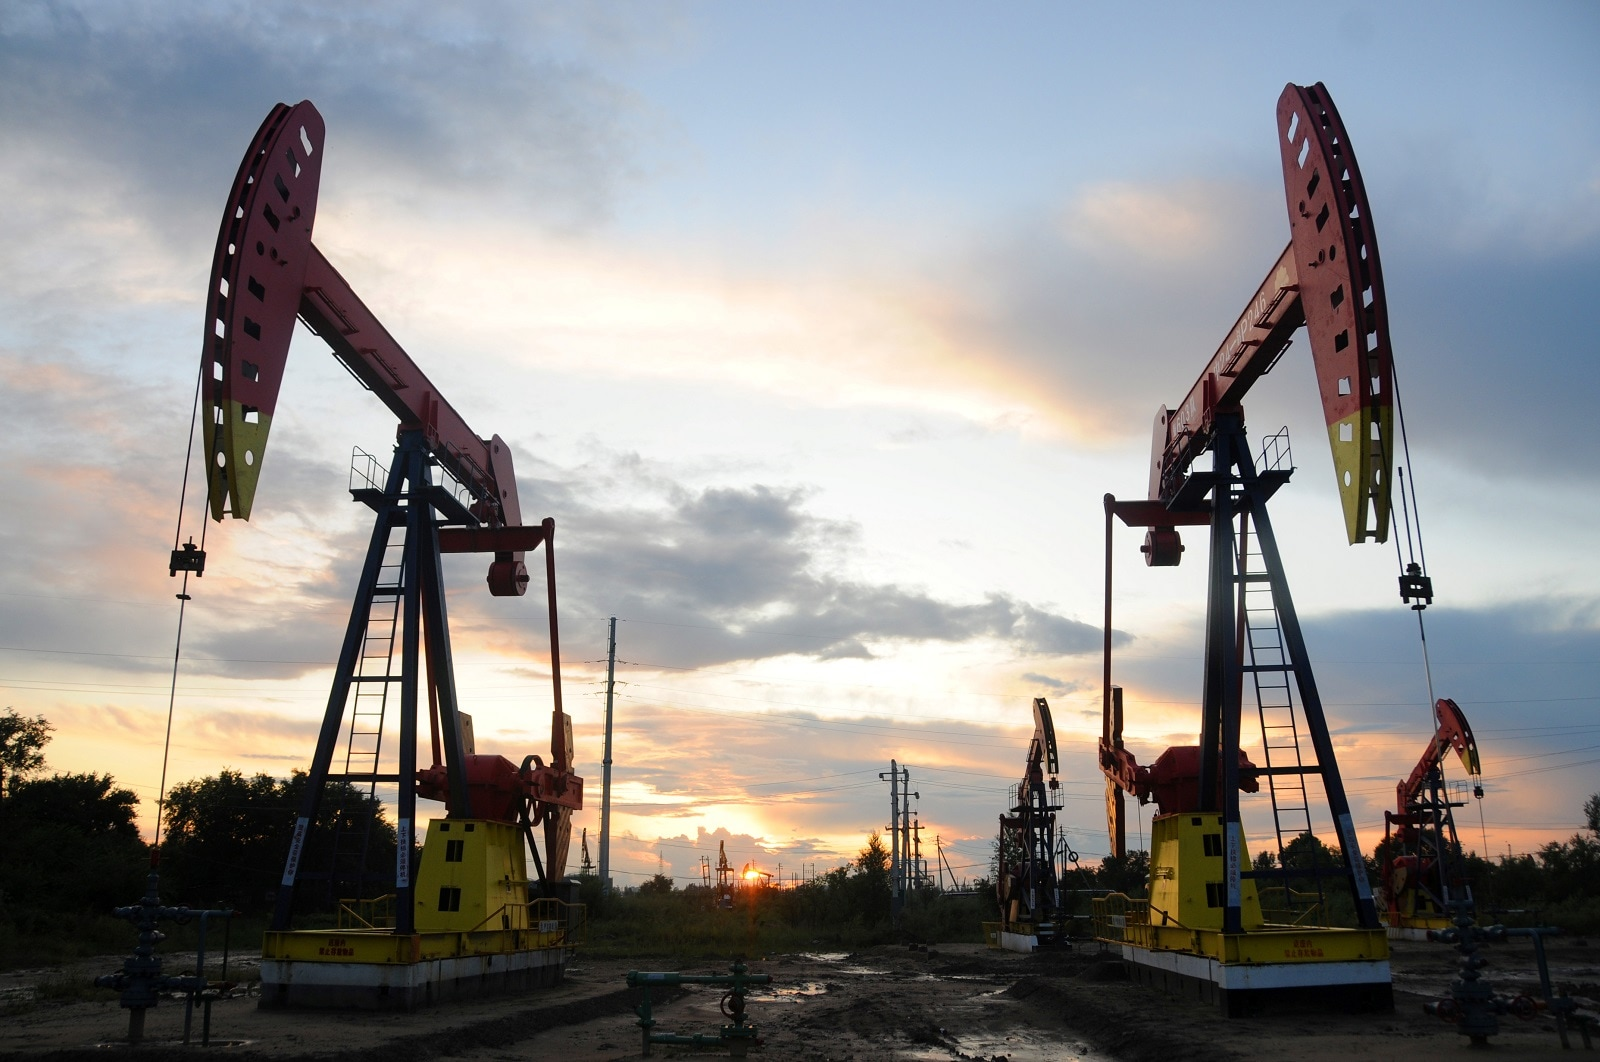 4. Crude Oil: U.S. crude ticked up 0.27 percent to $56.64 a barrel, while Brent crude rose to 0.29 percent & $62.54 per barrel in a sign some investors anticipate higher demand for energy and fuel in the future due to stronger economic activity. (Image: Reuters)